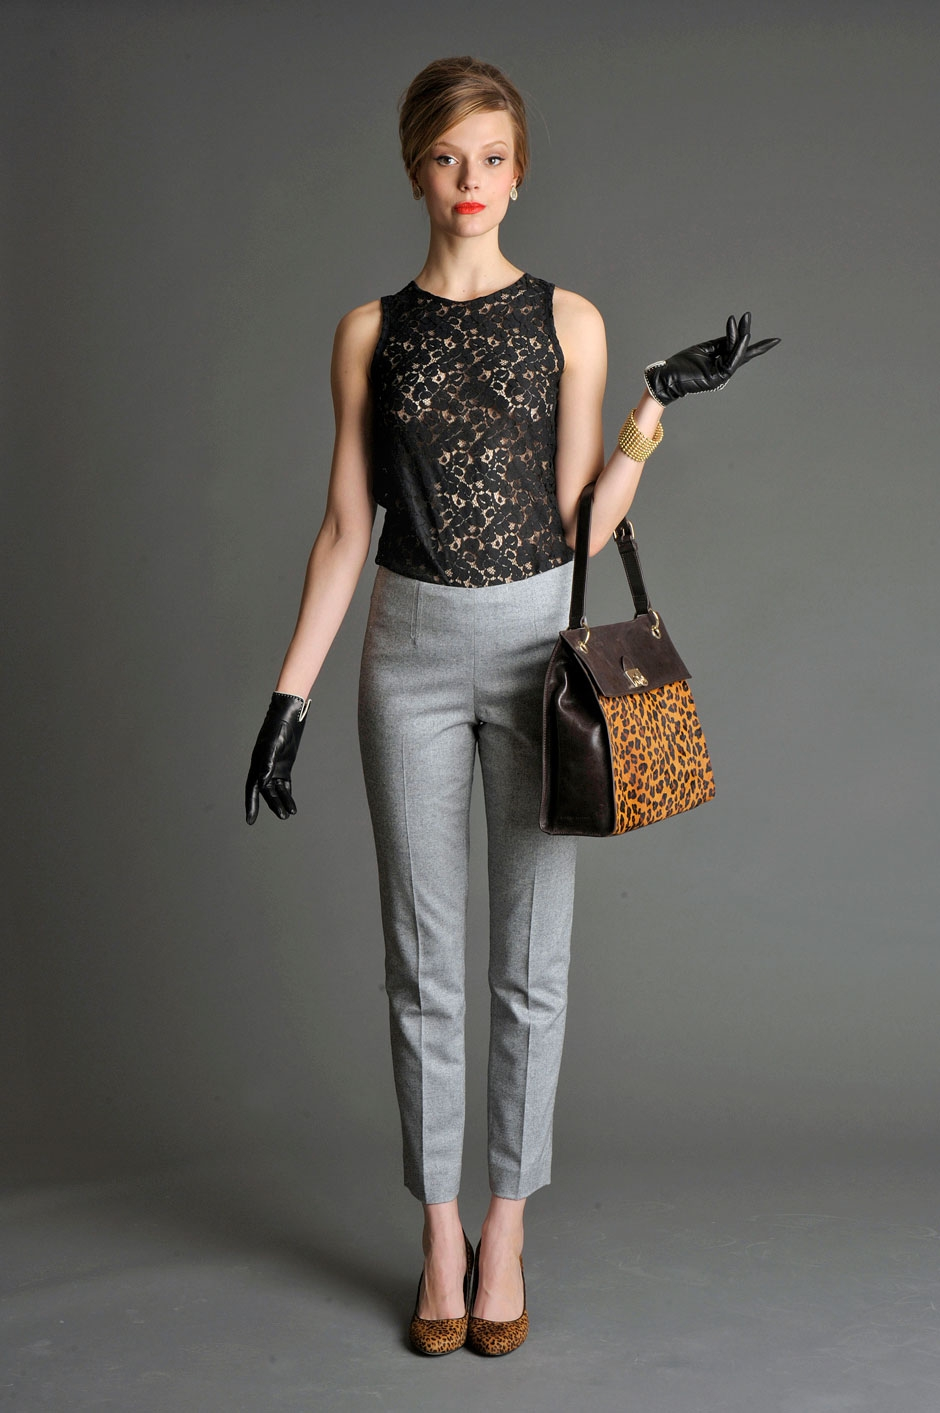 Banana Republic | Mad Men u0026#39;11 Collection Look Book | Cool Chic Style Fashion